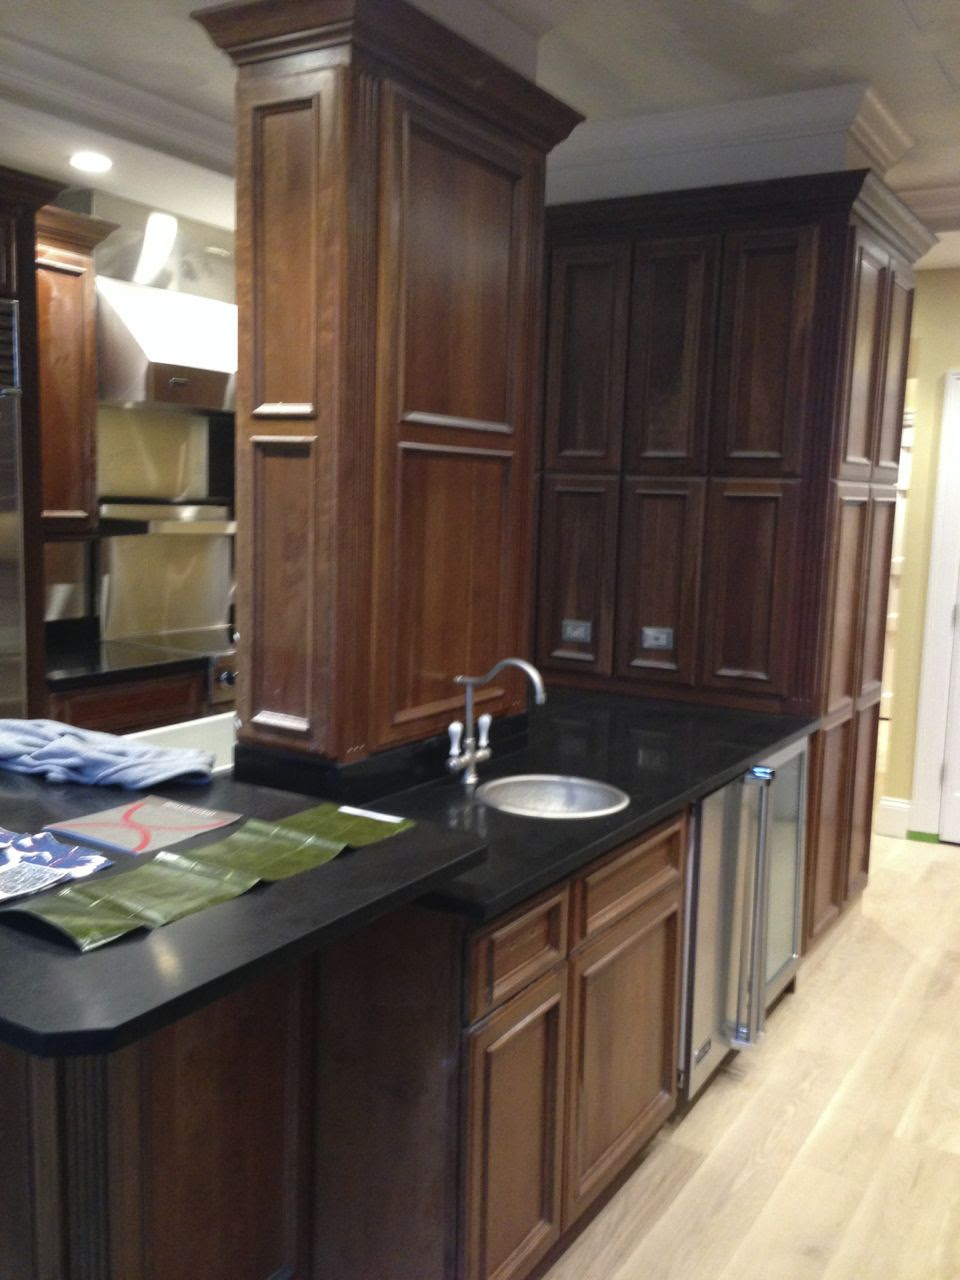 Painting Wood Cabinets - Creating a Bold New Look for a ...